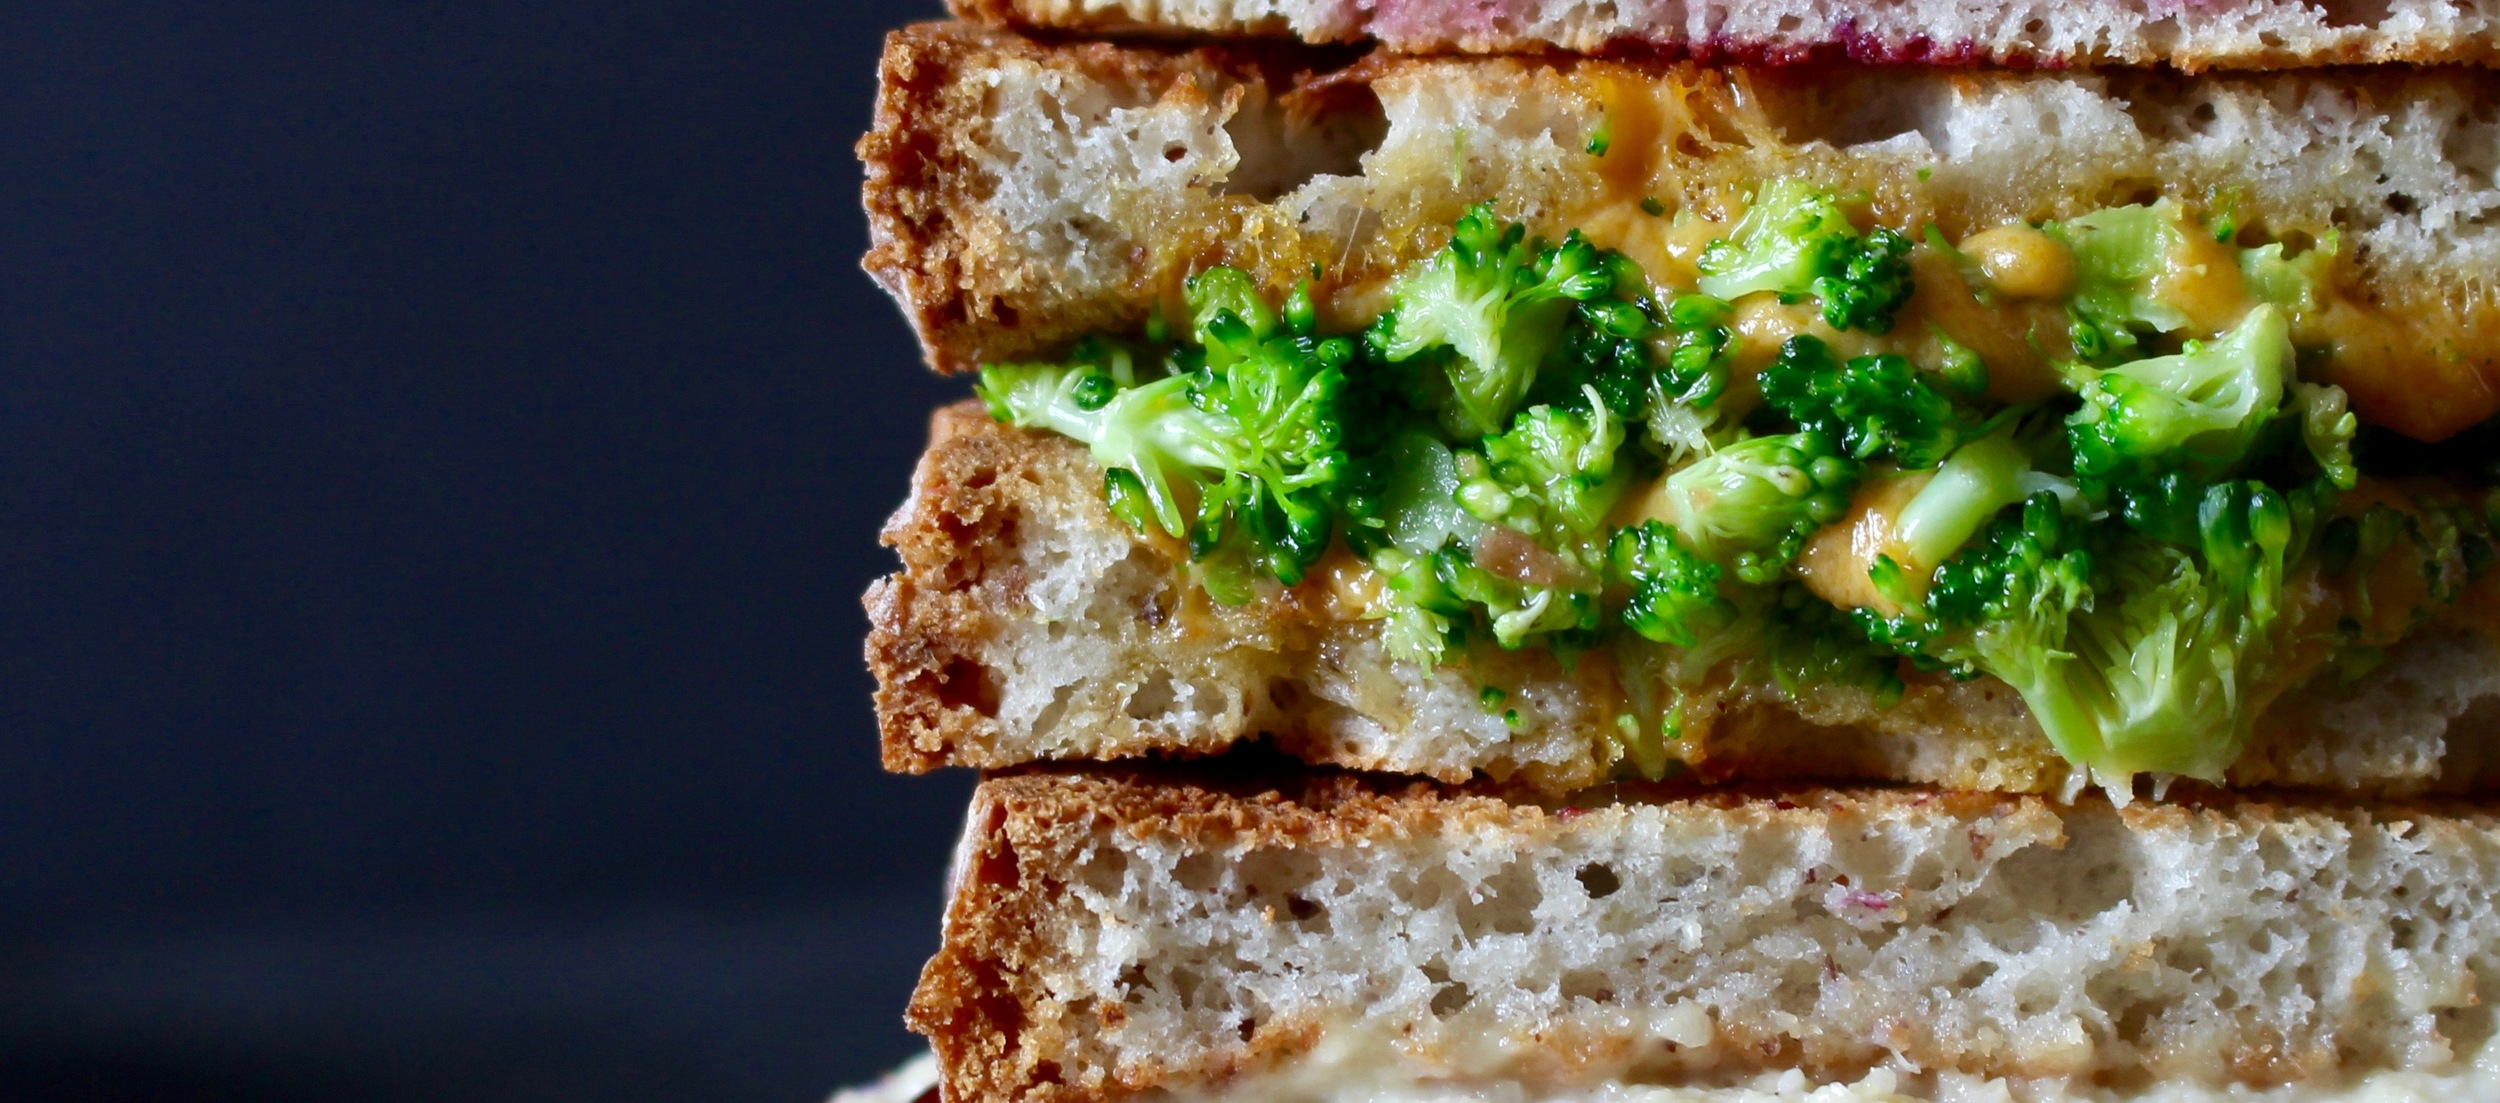 vegan grilled cheese sandwich recipe / broccoli cheddar / vegan + gluten free perfect for lunch | Miami Lifestyle blogger Zeinab Kristen | Your off the grid guide to simple slow sustainable travel & lifestyle